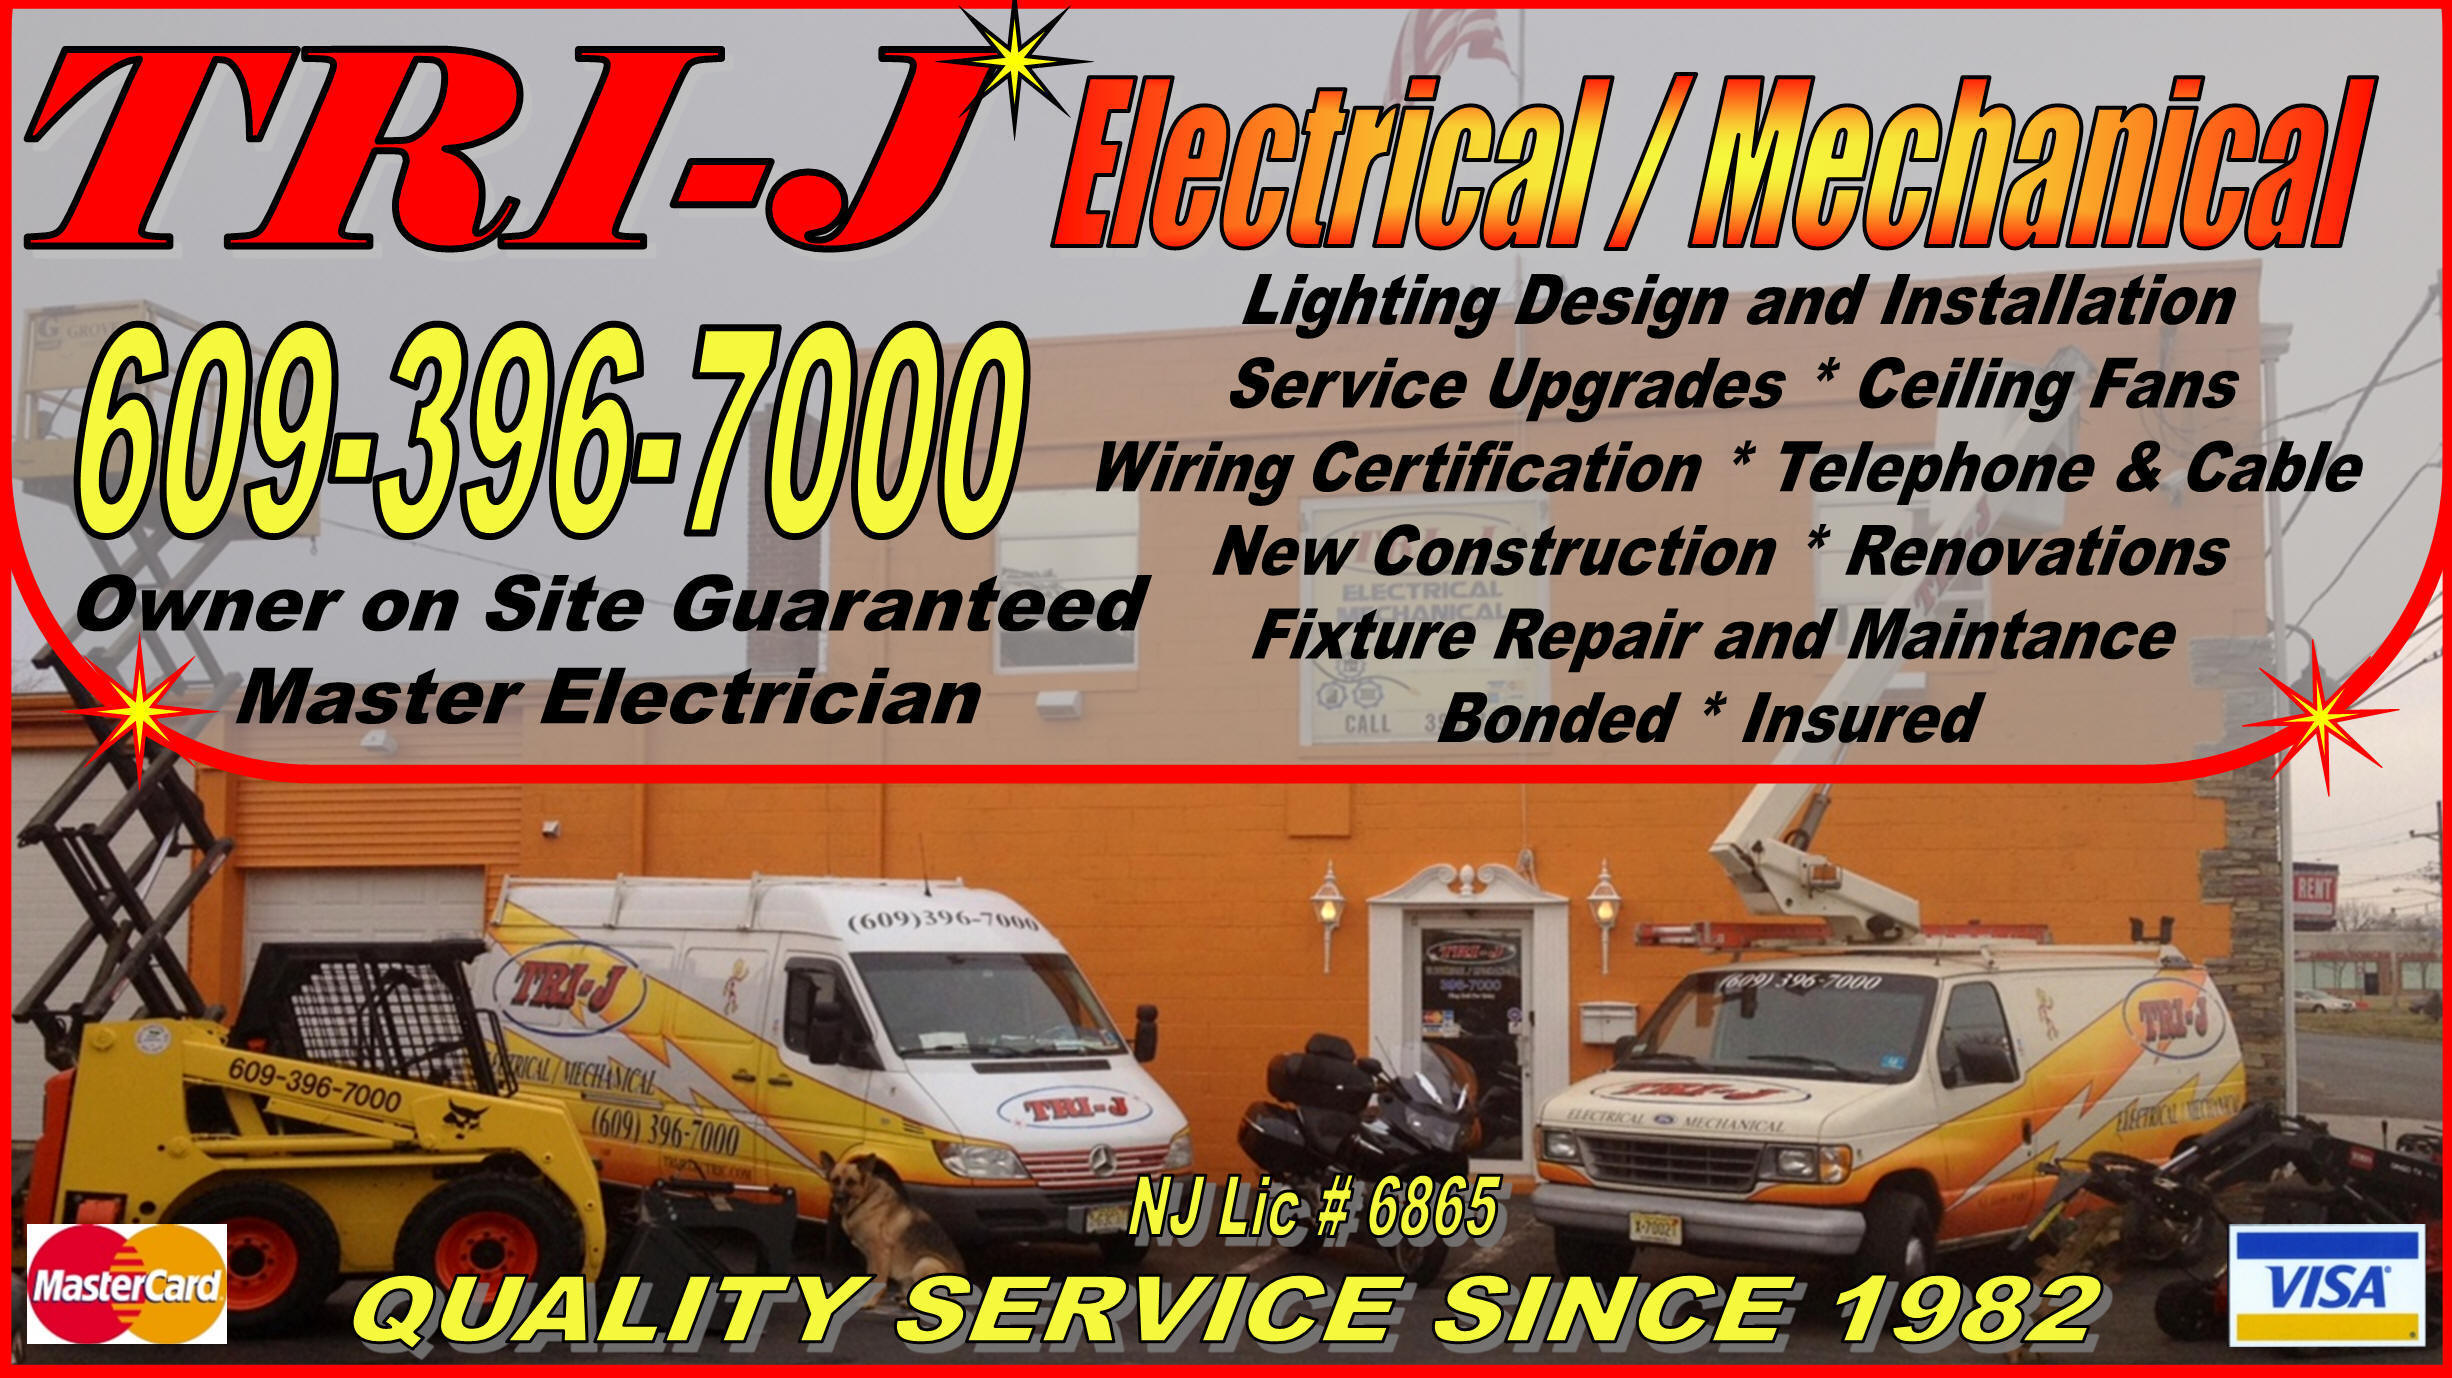 Tri J Electrical Mechanical Commercial Motor Wiring